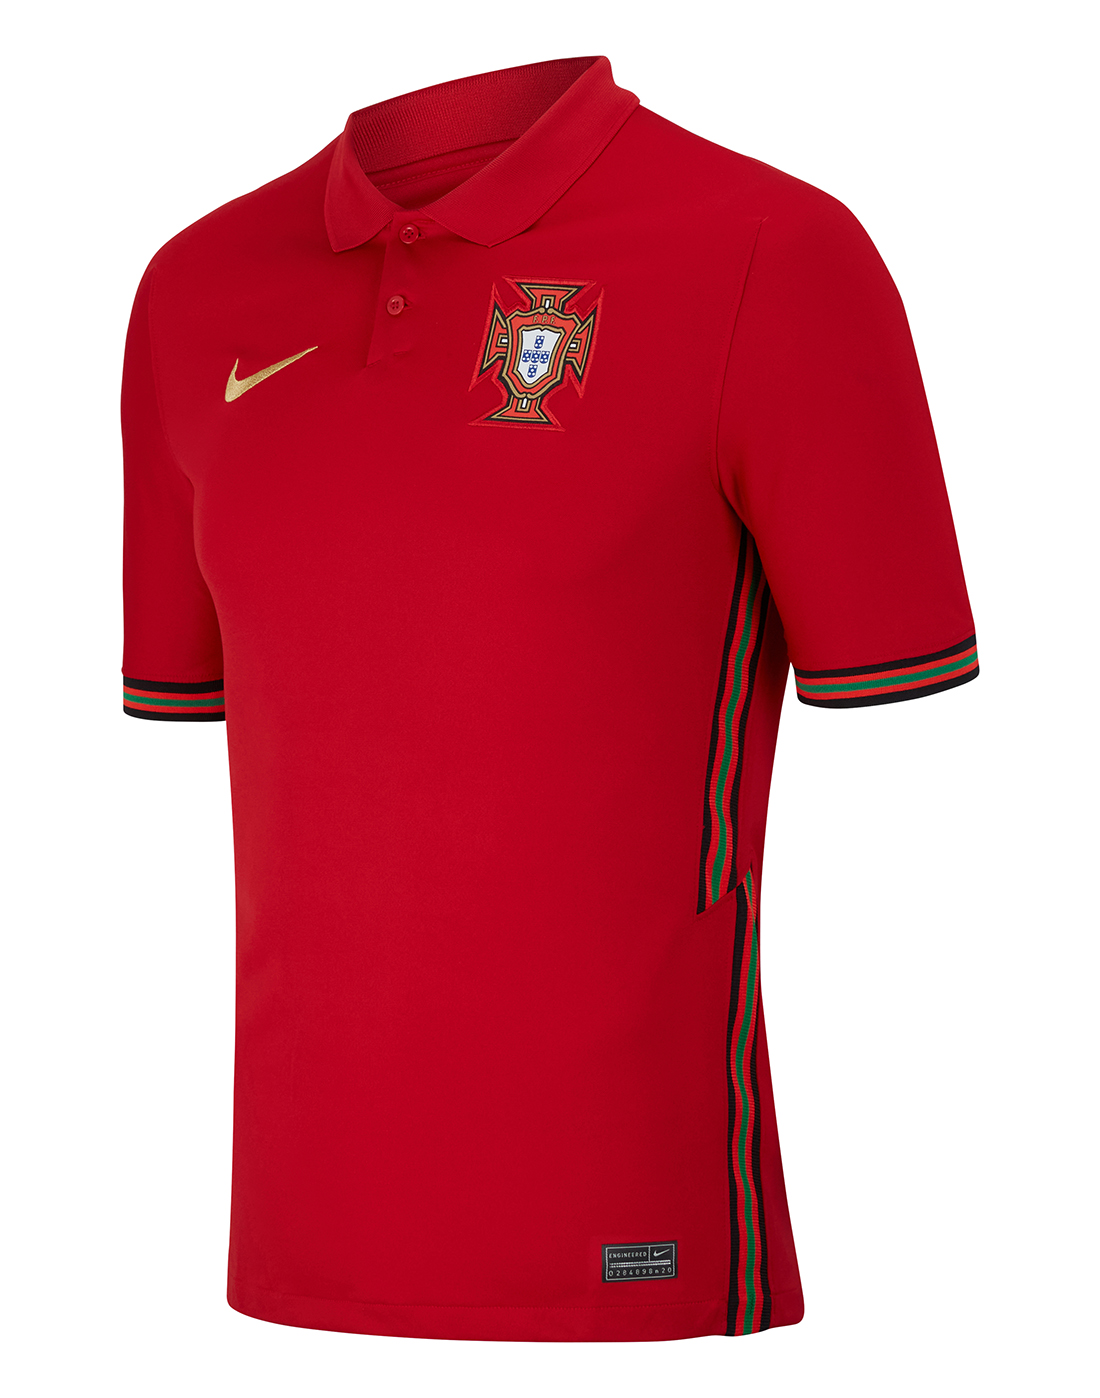 Nike Adult Portugal Euro 2020 Home Jersey - Red   Life Style Sports EU